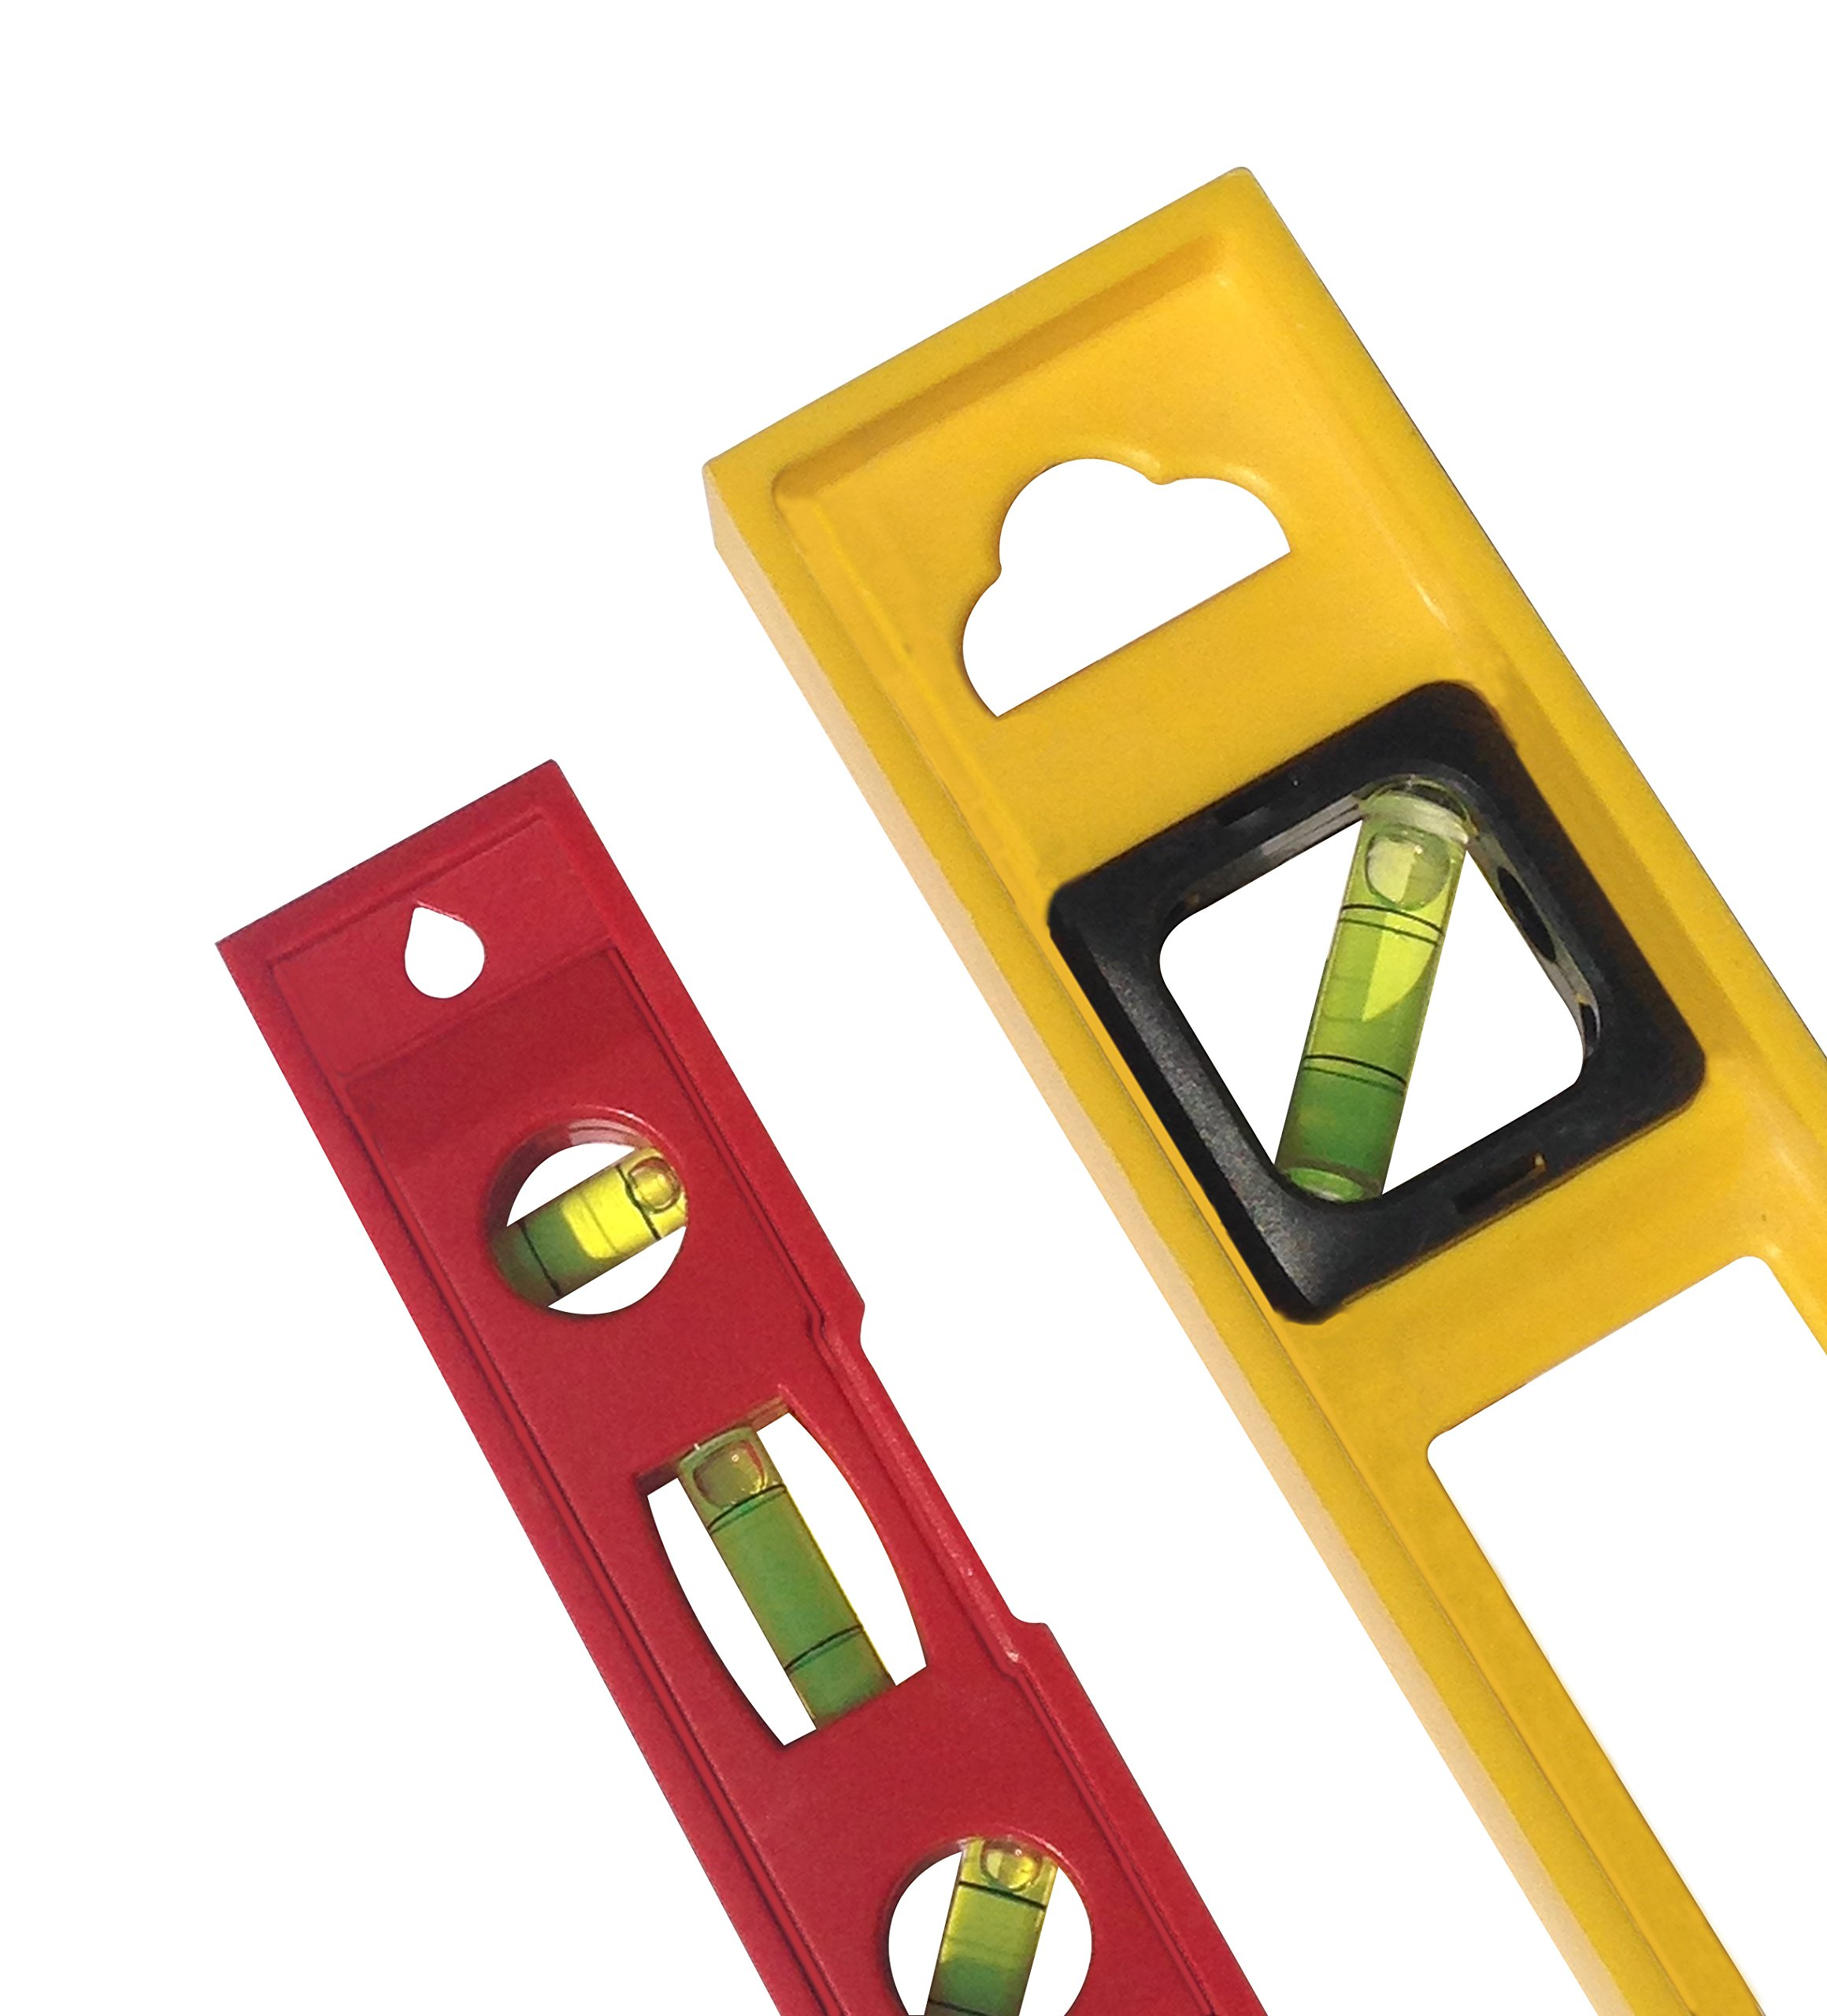 24 Inch and 6 Inch 3 Bubble Torpedo Level Pack Home or Jobsite Approved by Straight and Narrow (Image #3)